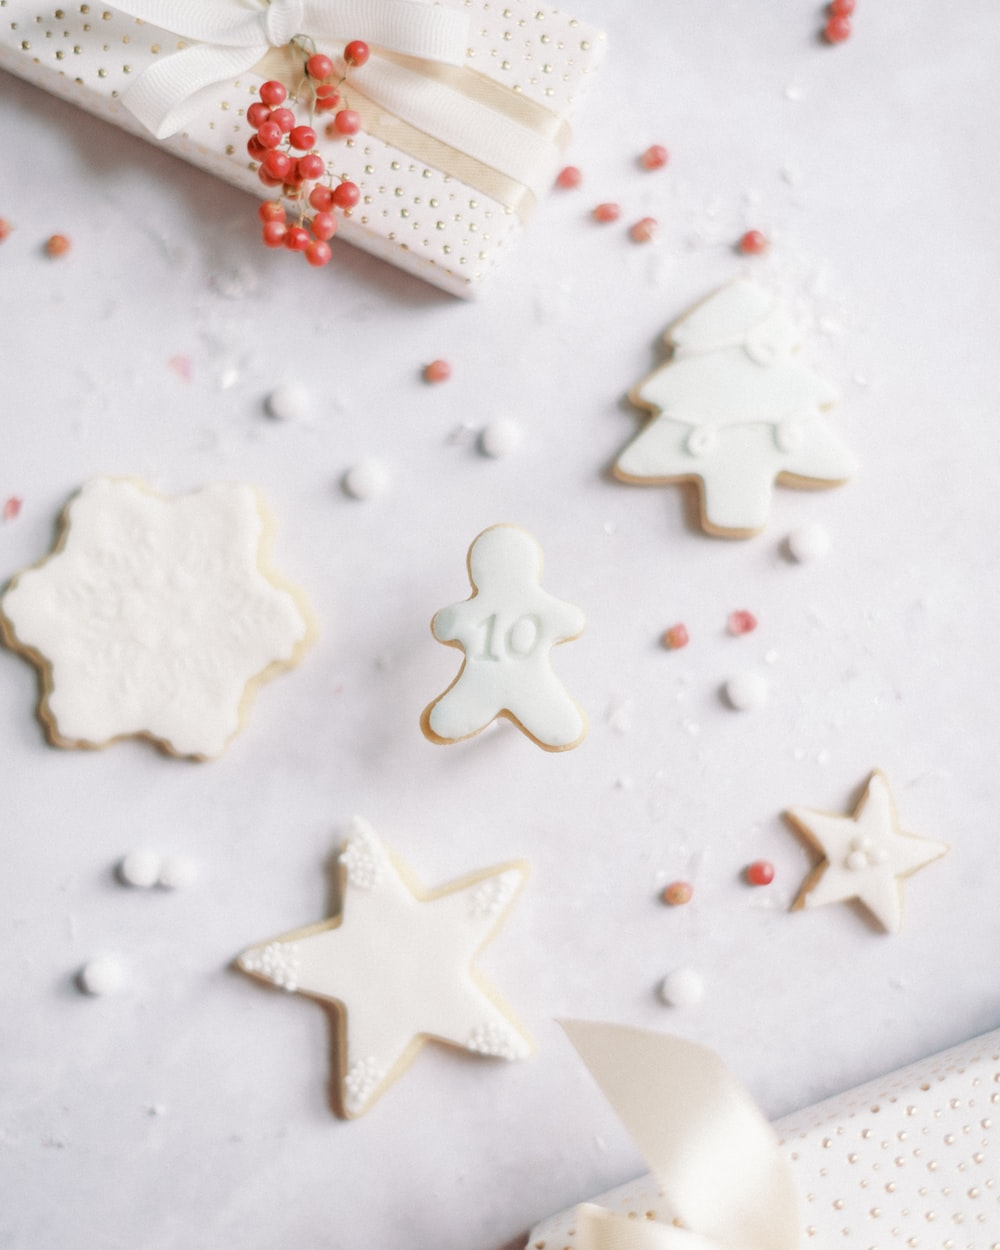 white star shaped cookies on white ceramic plate